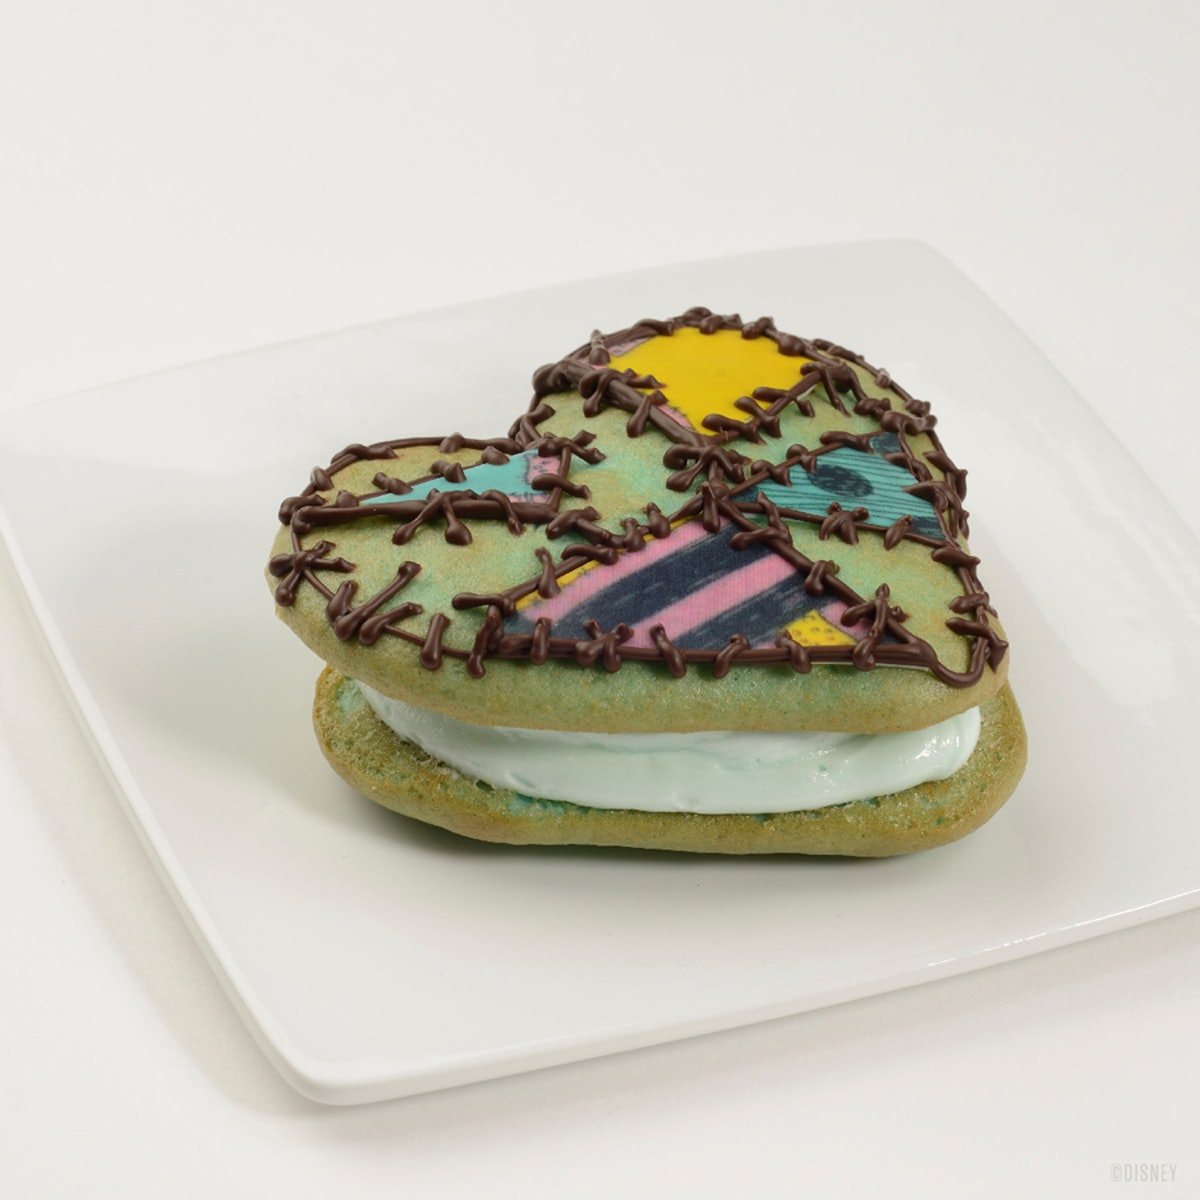 Disney's 2021 Halloween food and drink in parks includes a Sally Whoopie Pie.